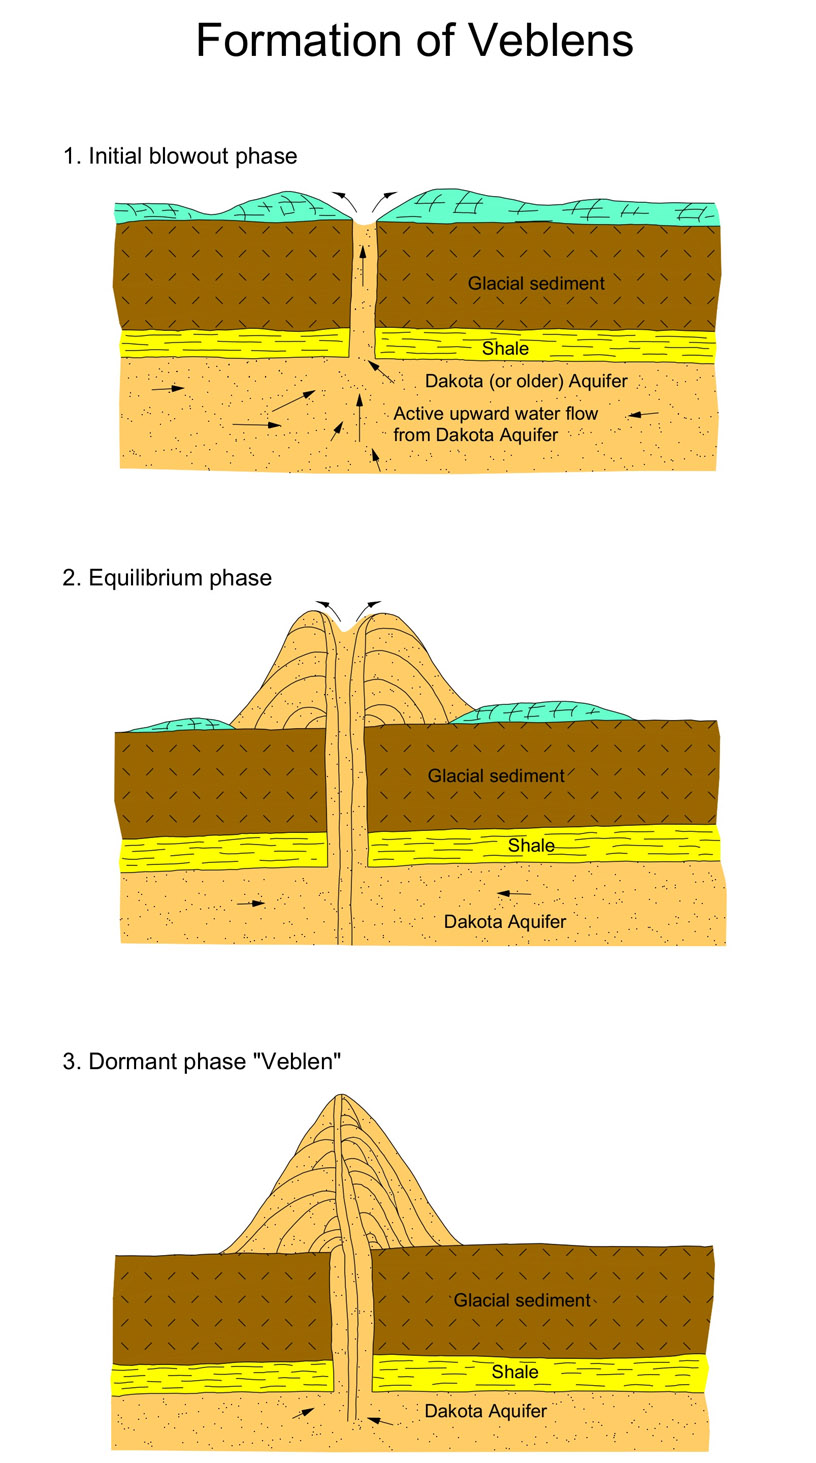 North dakota geologic survey how hydrodynamic blowouts may have formed pooptronica